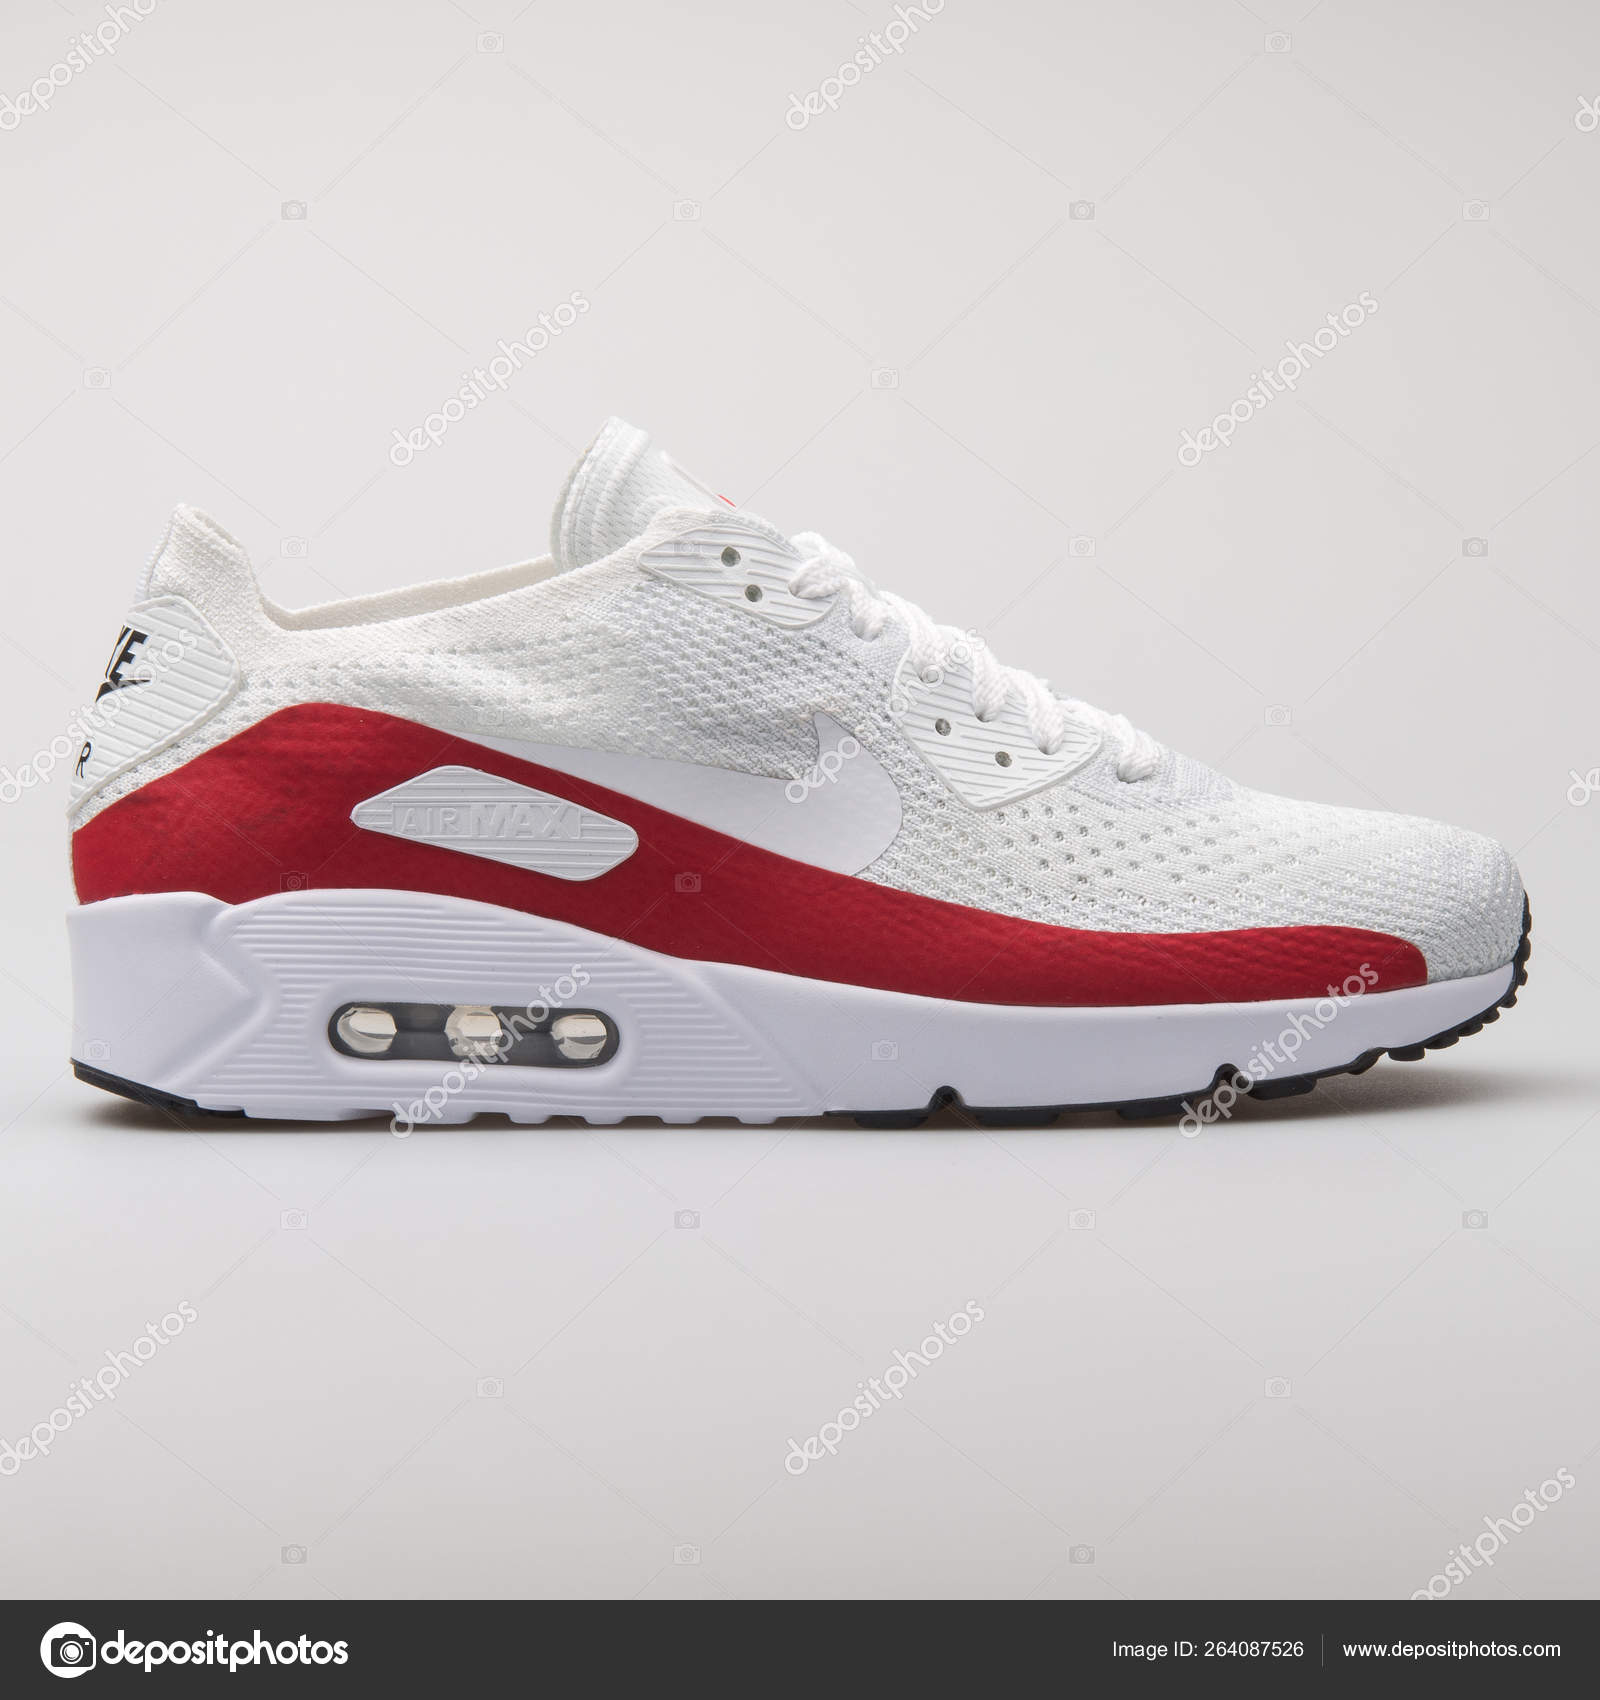 new products 4fd32 b3bc0 Nike Air Max 90 Ultra 2.0 Flyknit white and red sneaker ...